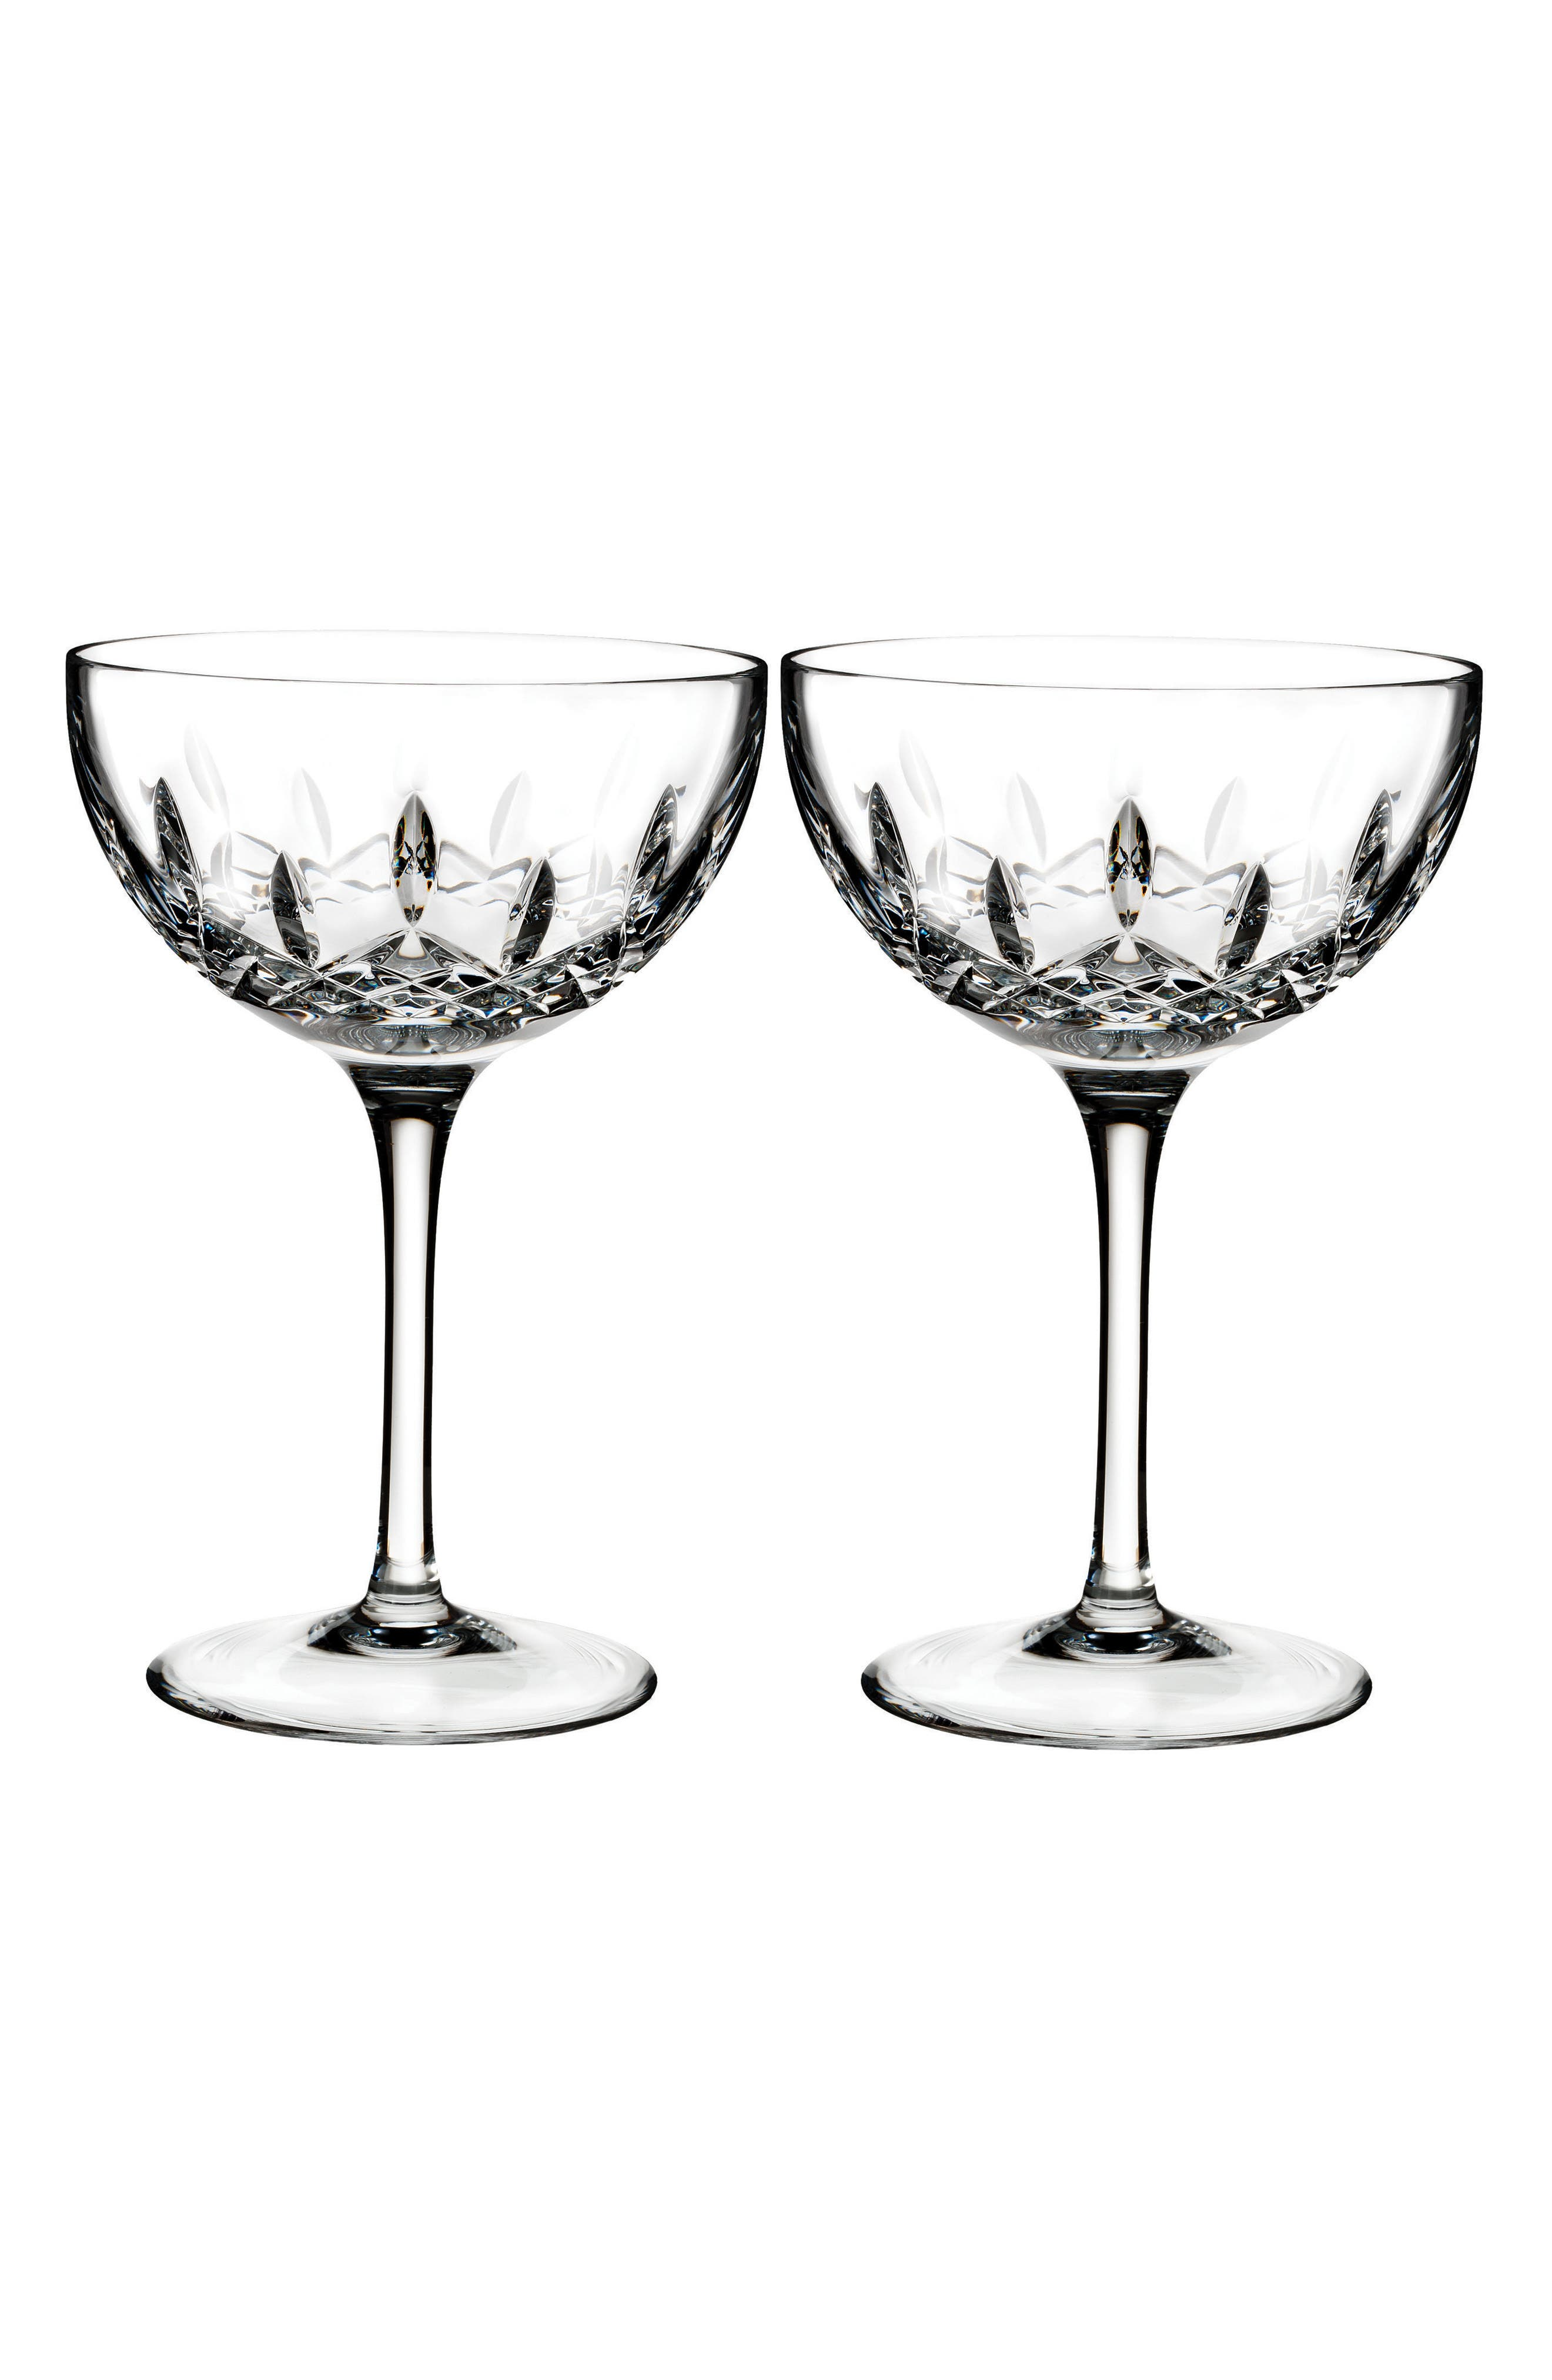 Main Image - Waterford Lismore Pops Set of 2 Lead Crystal Cocktail Glasses